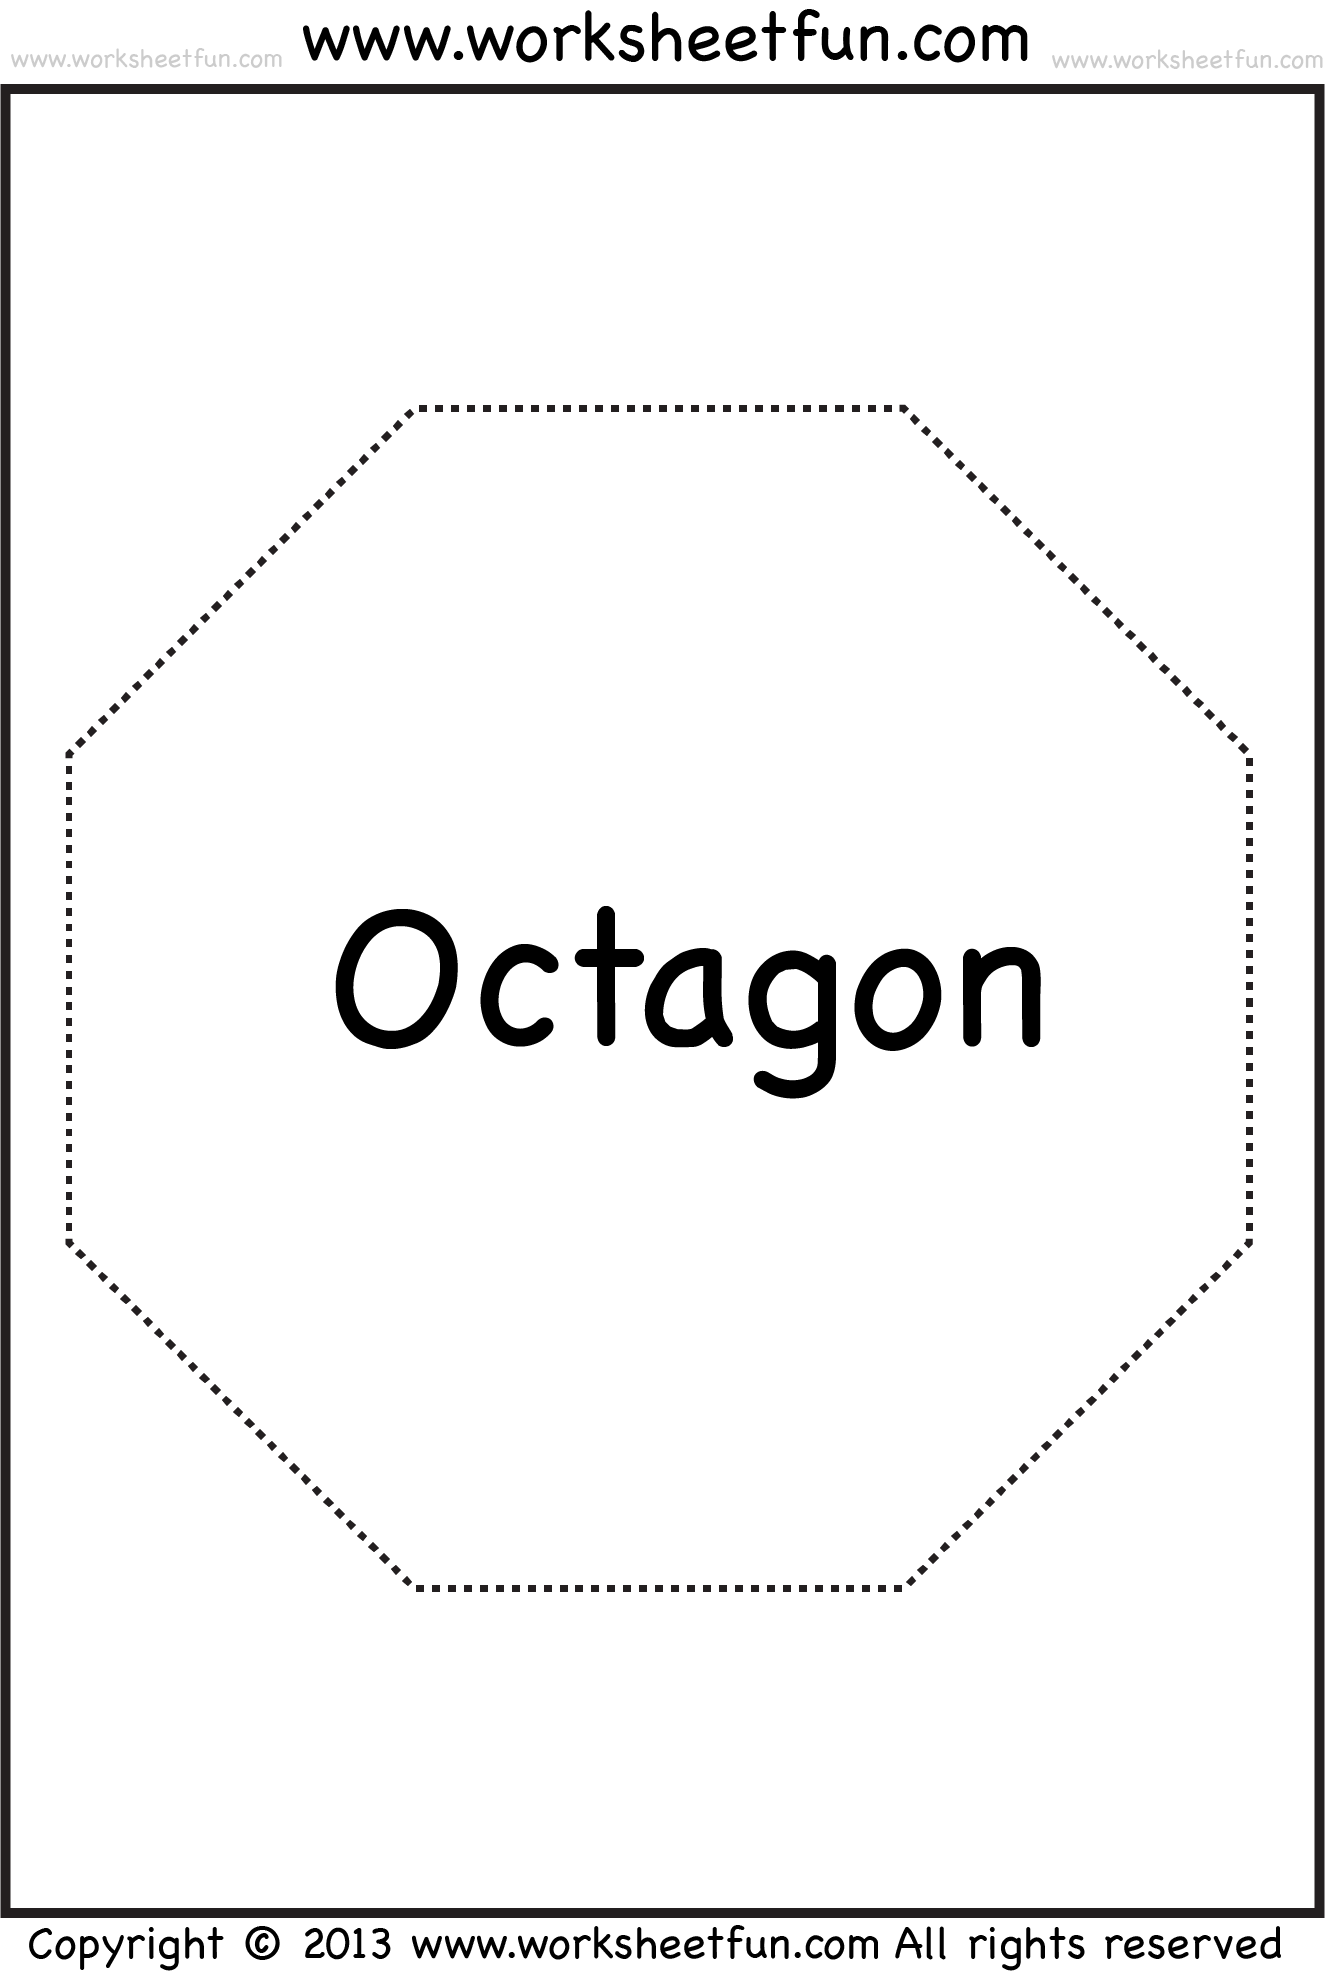 octagon math pinterest worksheets shapes worksheets and